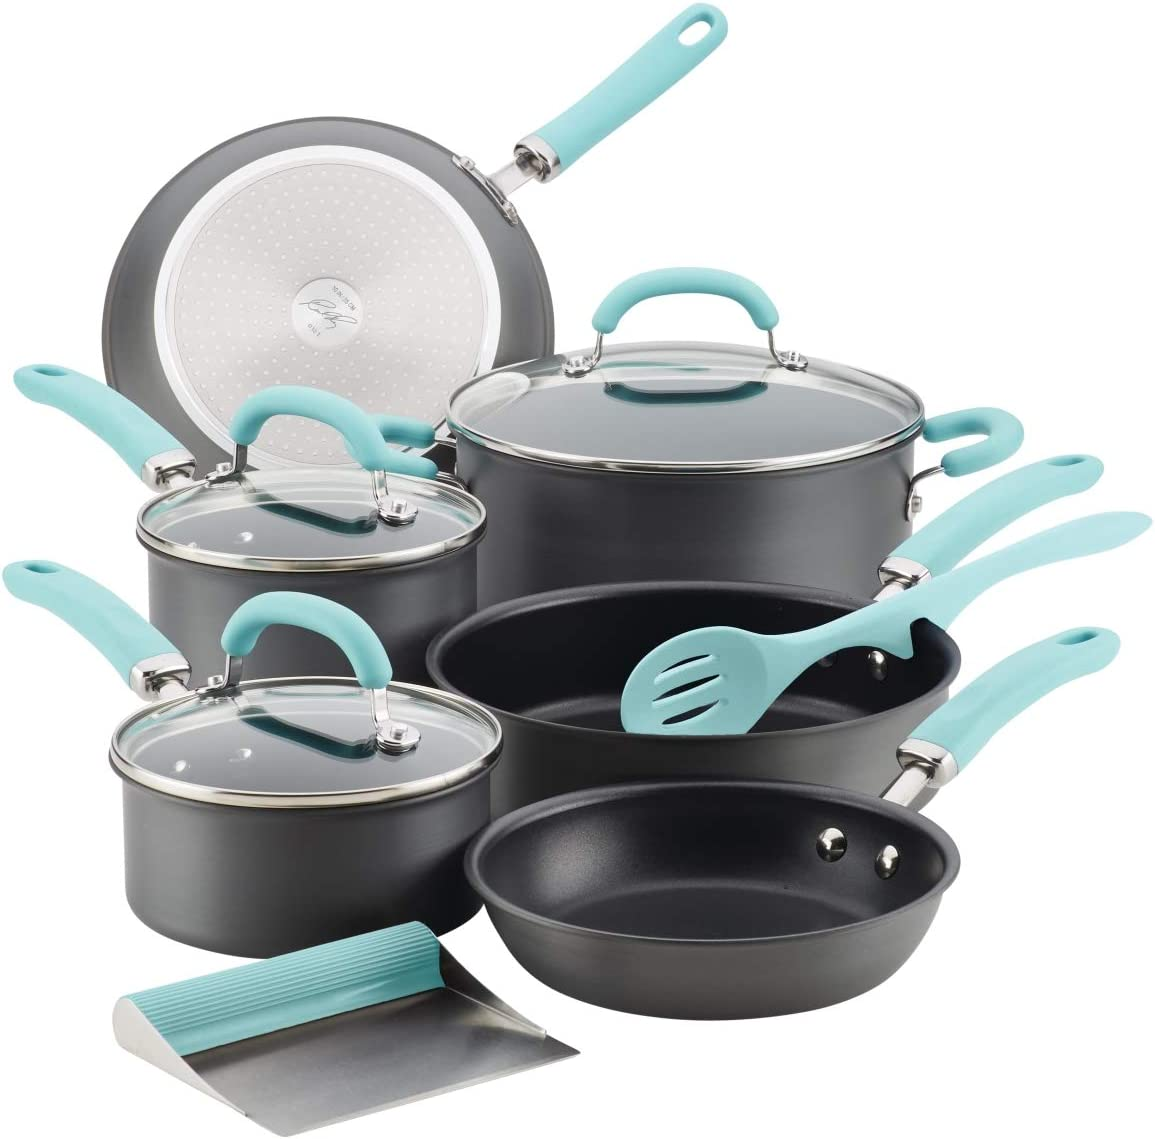 Rachael Ray 81125 11-Piece Hard Anodized Aluminum Cookware Set, Gray with Light Blue Handles